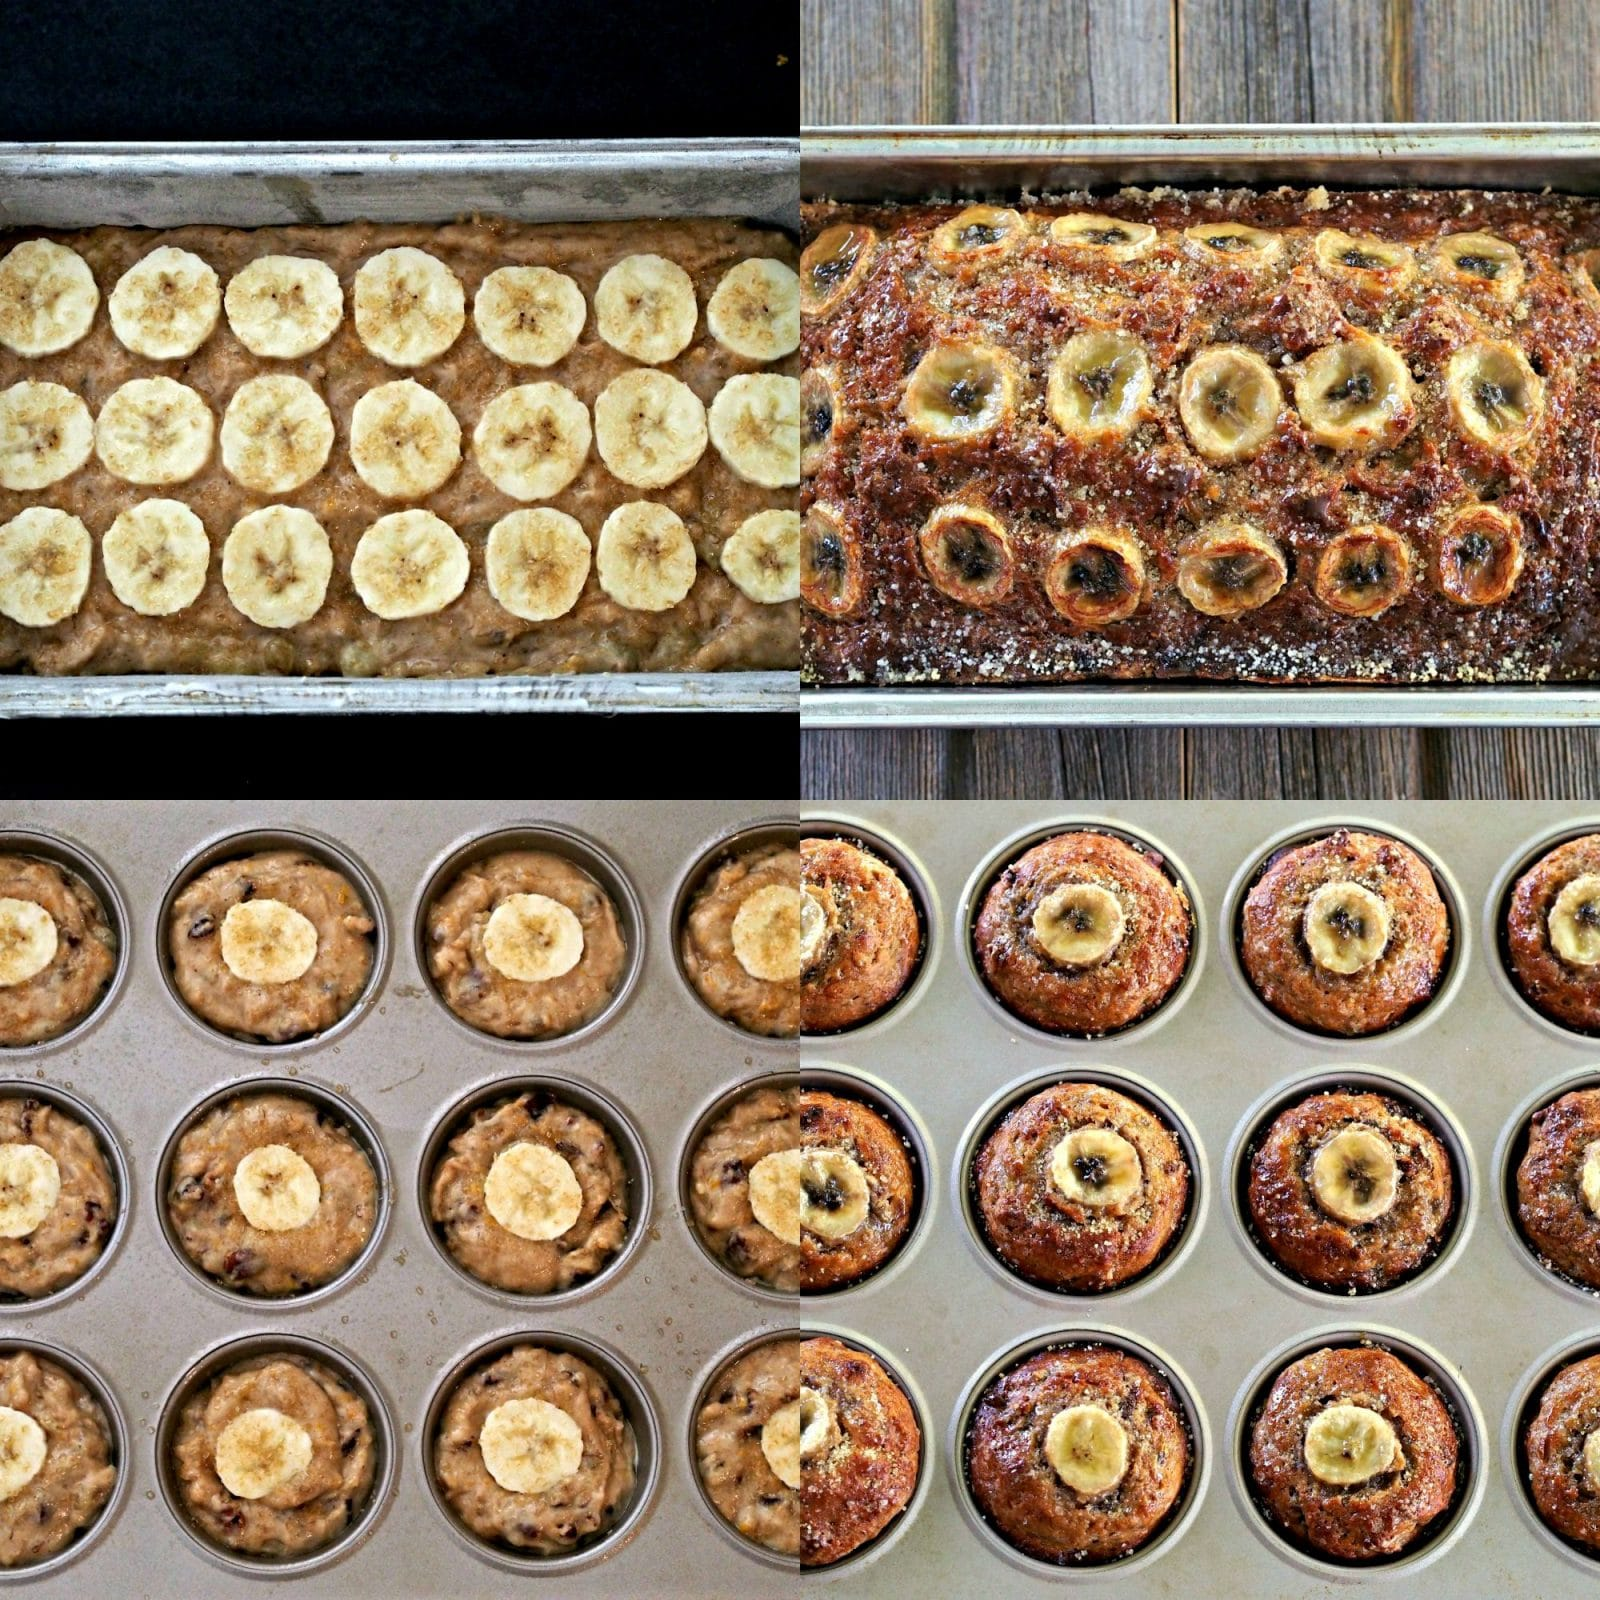 Orange Spice Banana Bread & Muffins. The BEST Banana Bread-ever! Moist & flavorful with toasted pecans, orange zest, cinnamon, nutmeg & caramelized bananas. Simply Sated